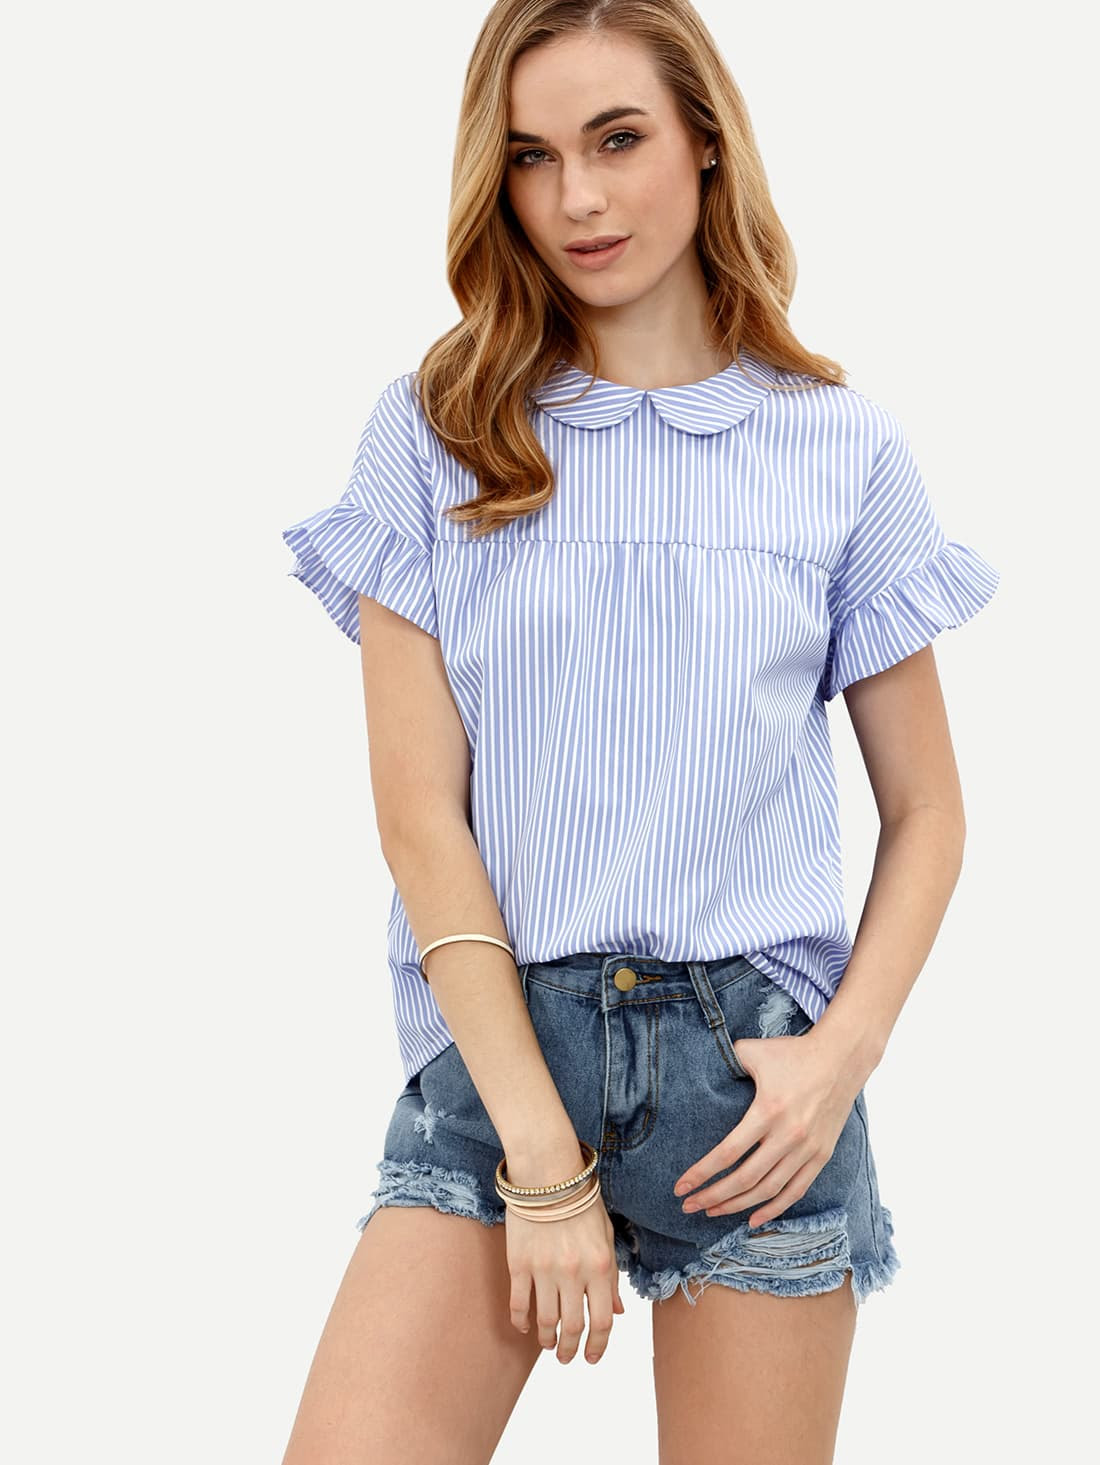 http://www.shein.com/Blue-Striped-Peter-Pan-Collar-Short-Sleeve-Blouse-p-292929-cat-1733.html?aff_id=8630